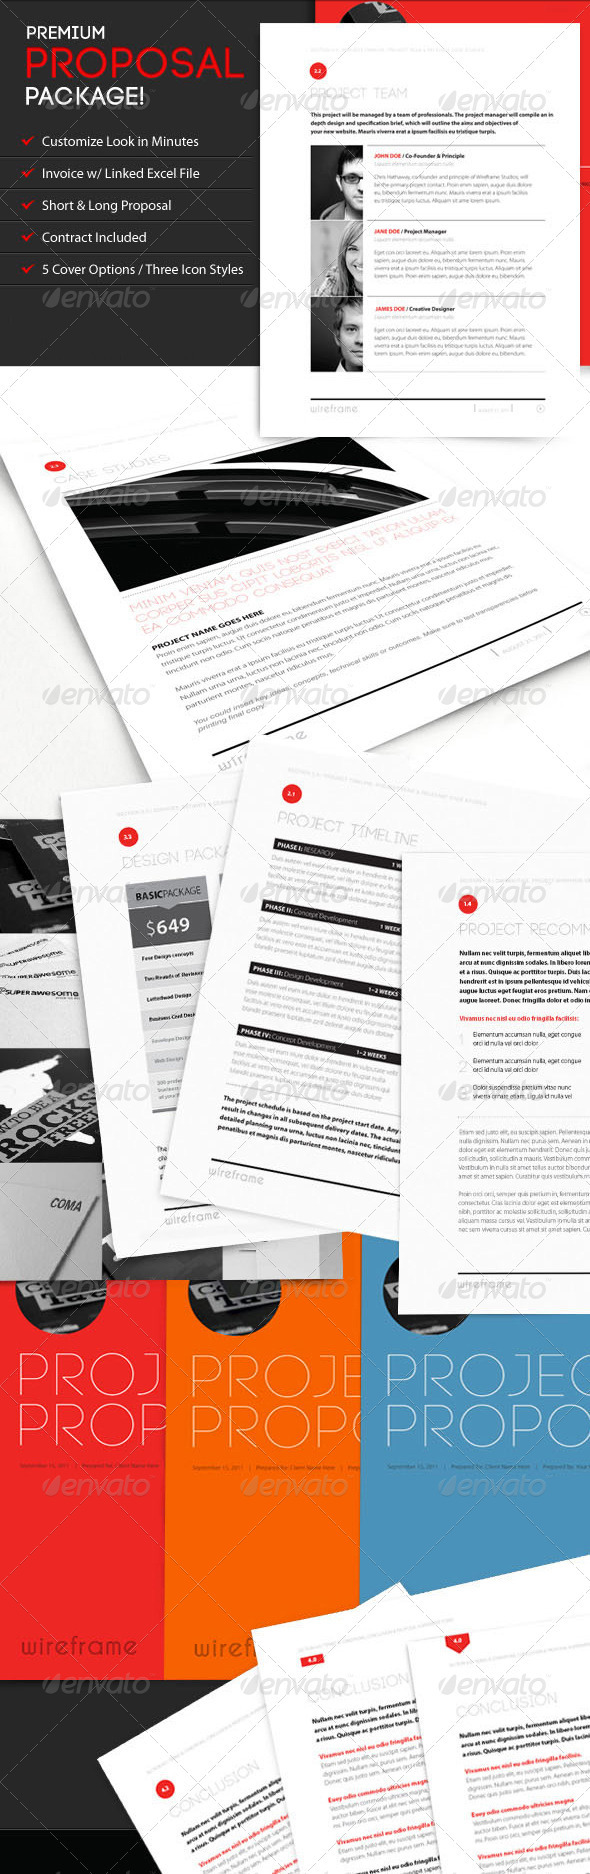 GraphicRiver Wireframe Proposal Template w Invoice & Contract 544155